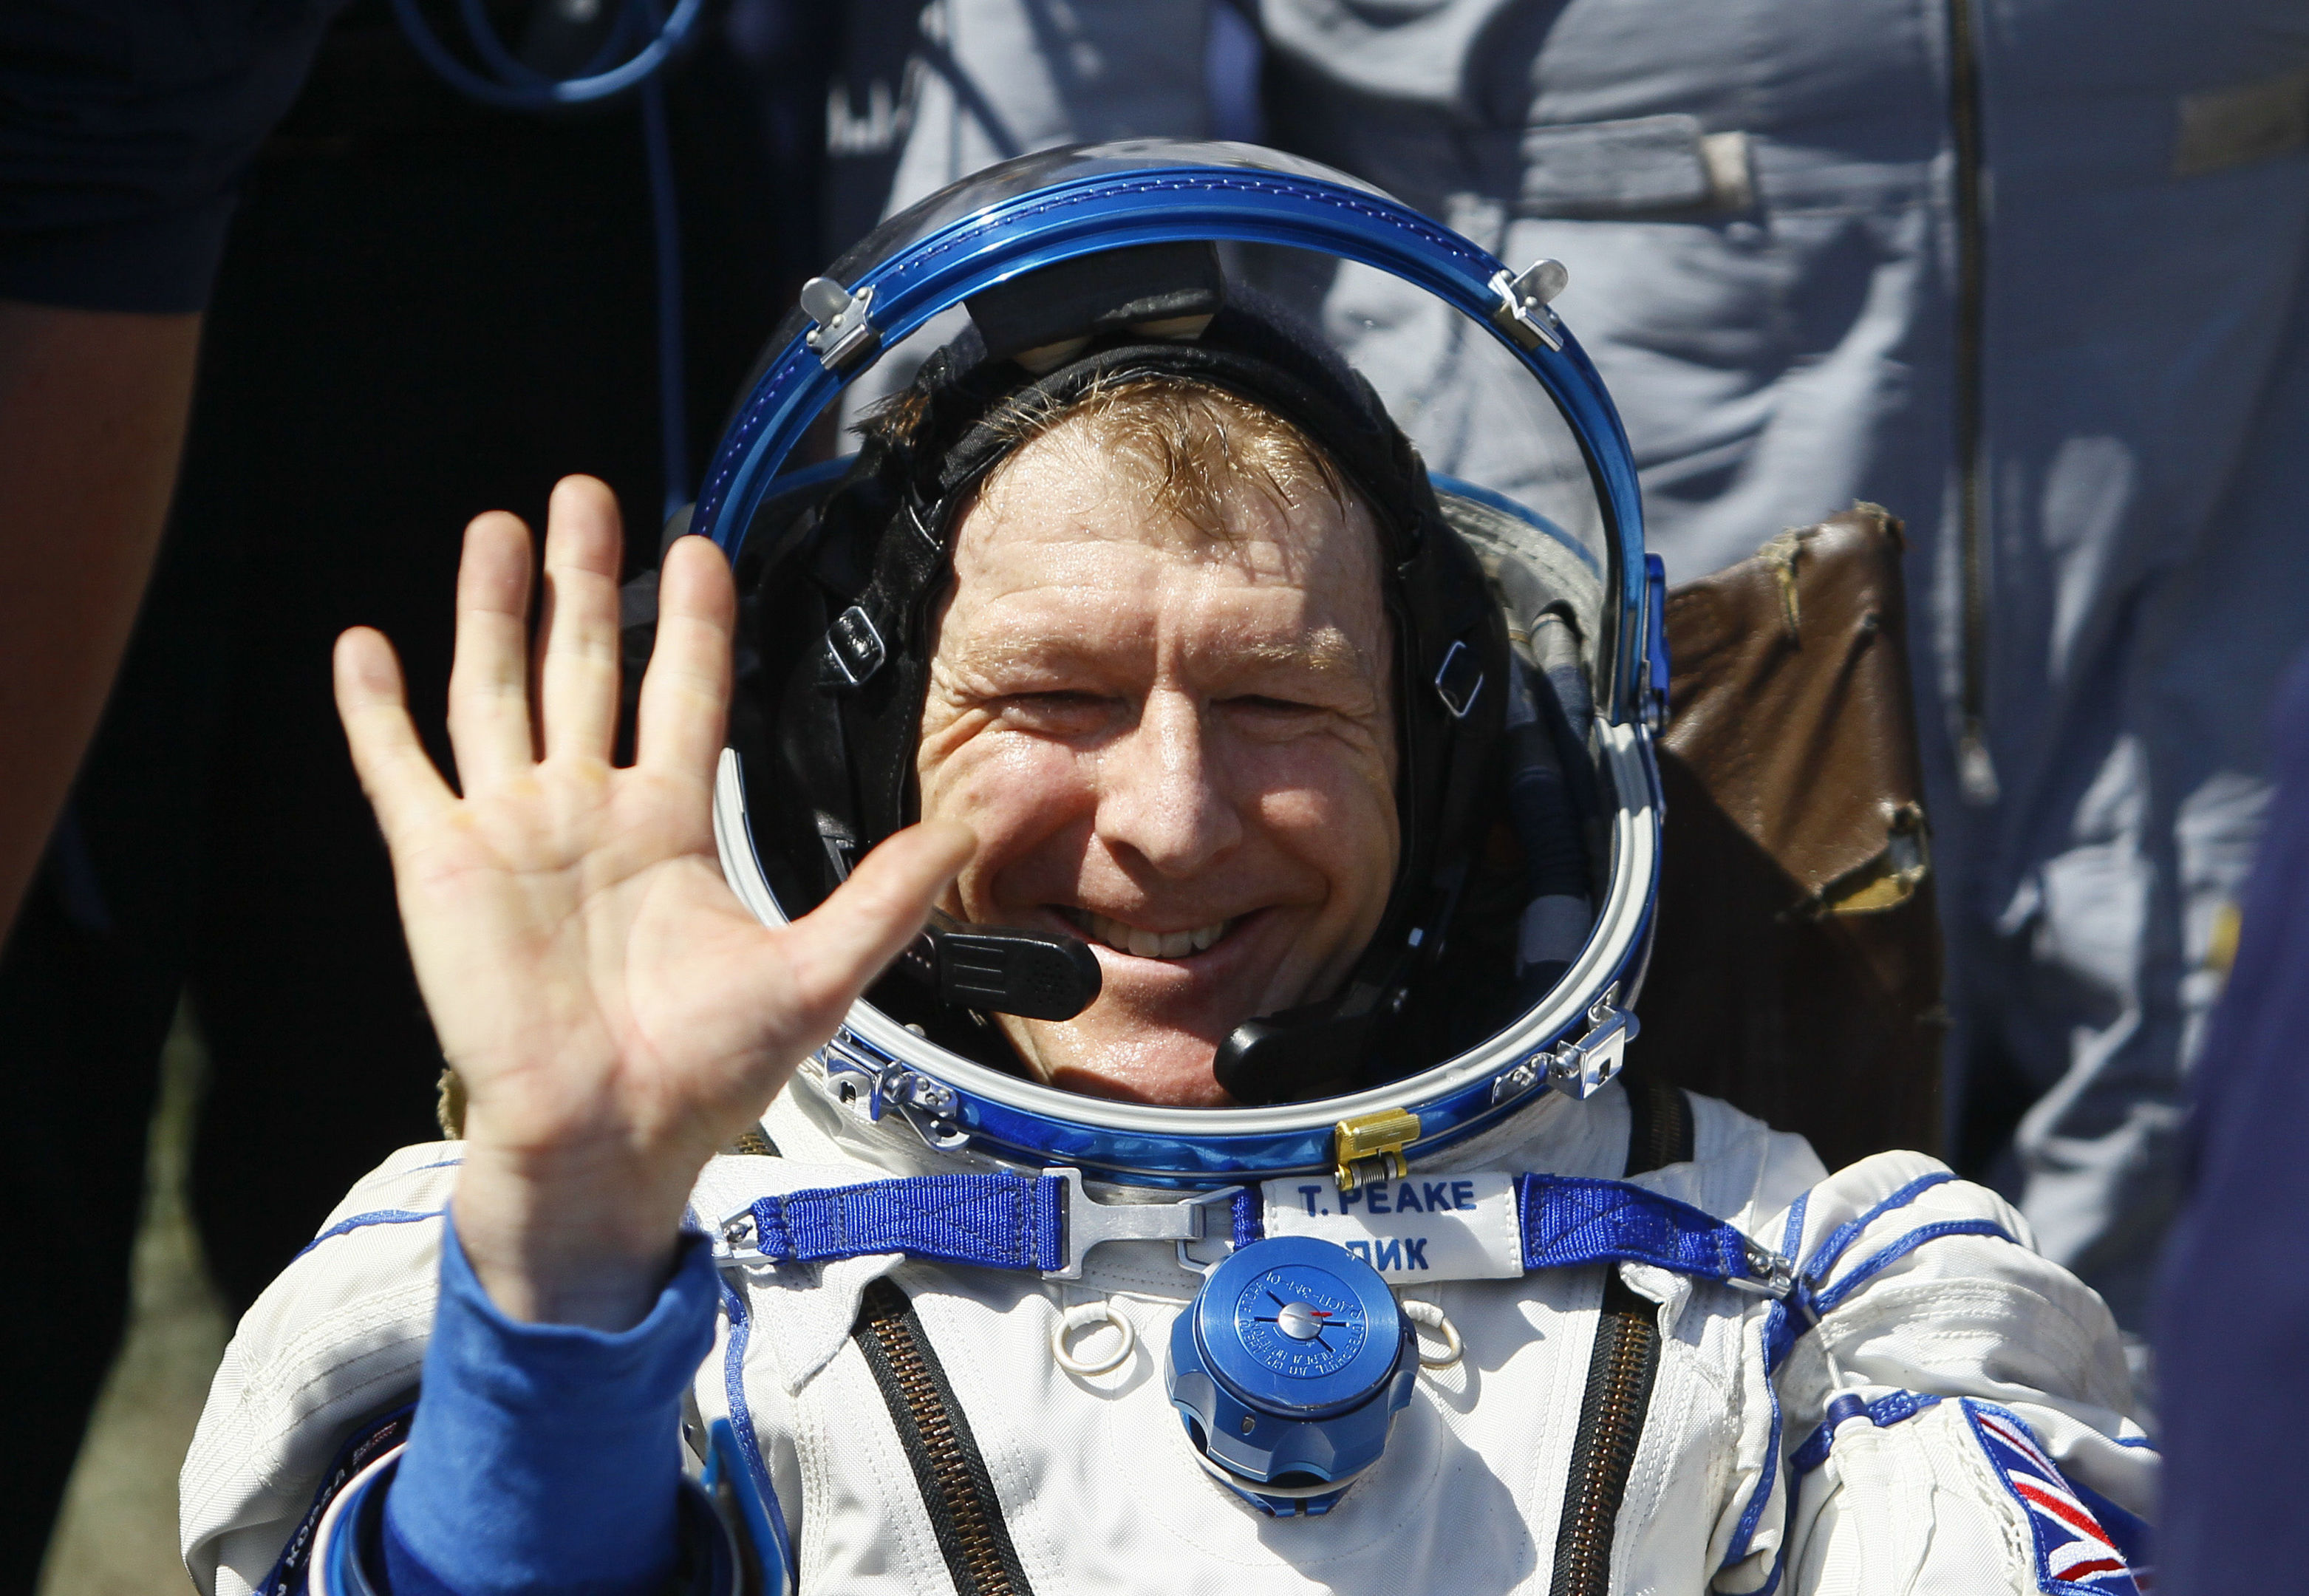 Member of the International Space Station (ISS) crew Britain's Tim Peake waves after landing near the town of Dzhezkazgan, Kazakhstan (Shamil Zhumatov/Pool Photo via AP)